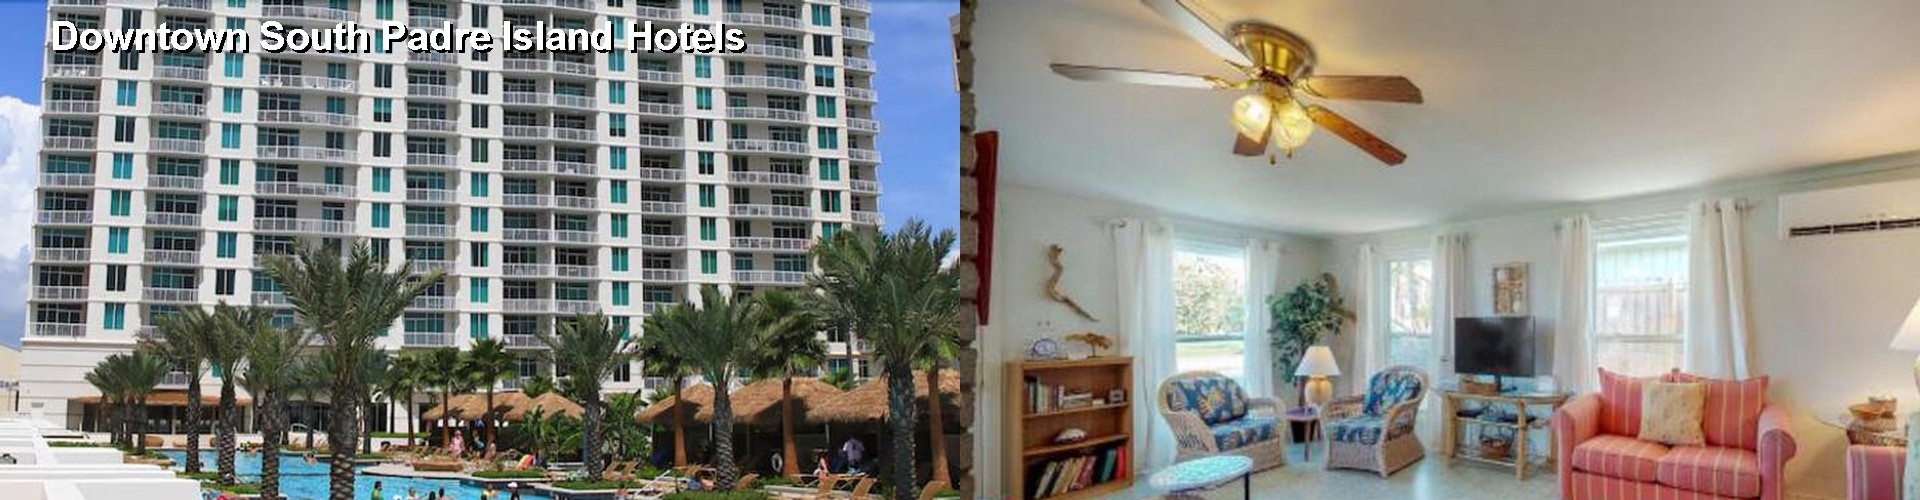 5 Best Hotels near Downtown South Padre Island